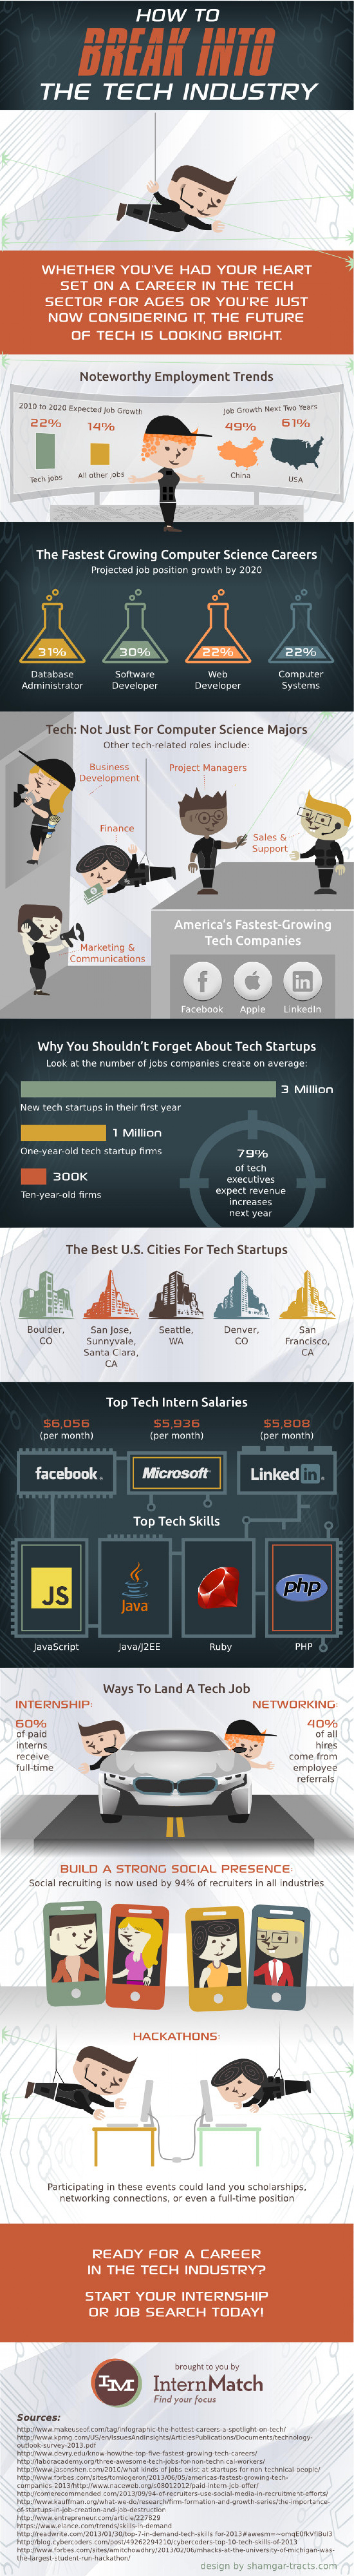 How to Break into the Tech Industry Infographic